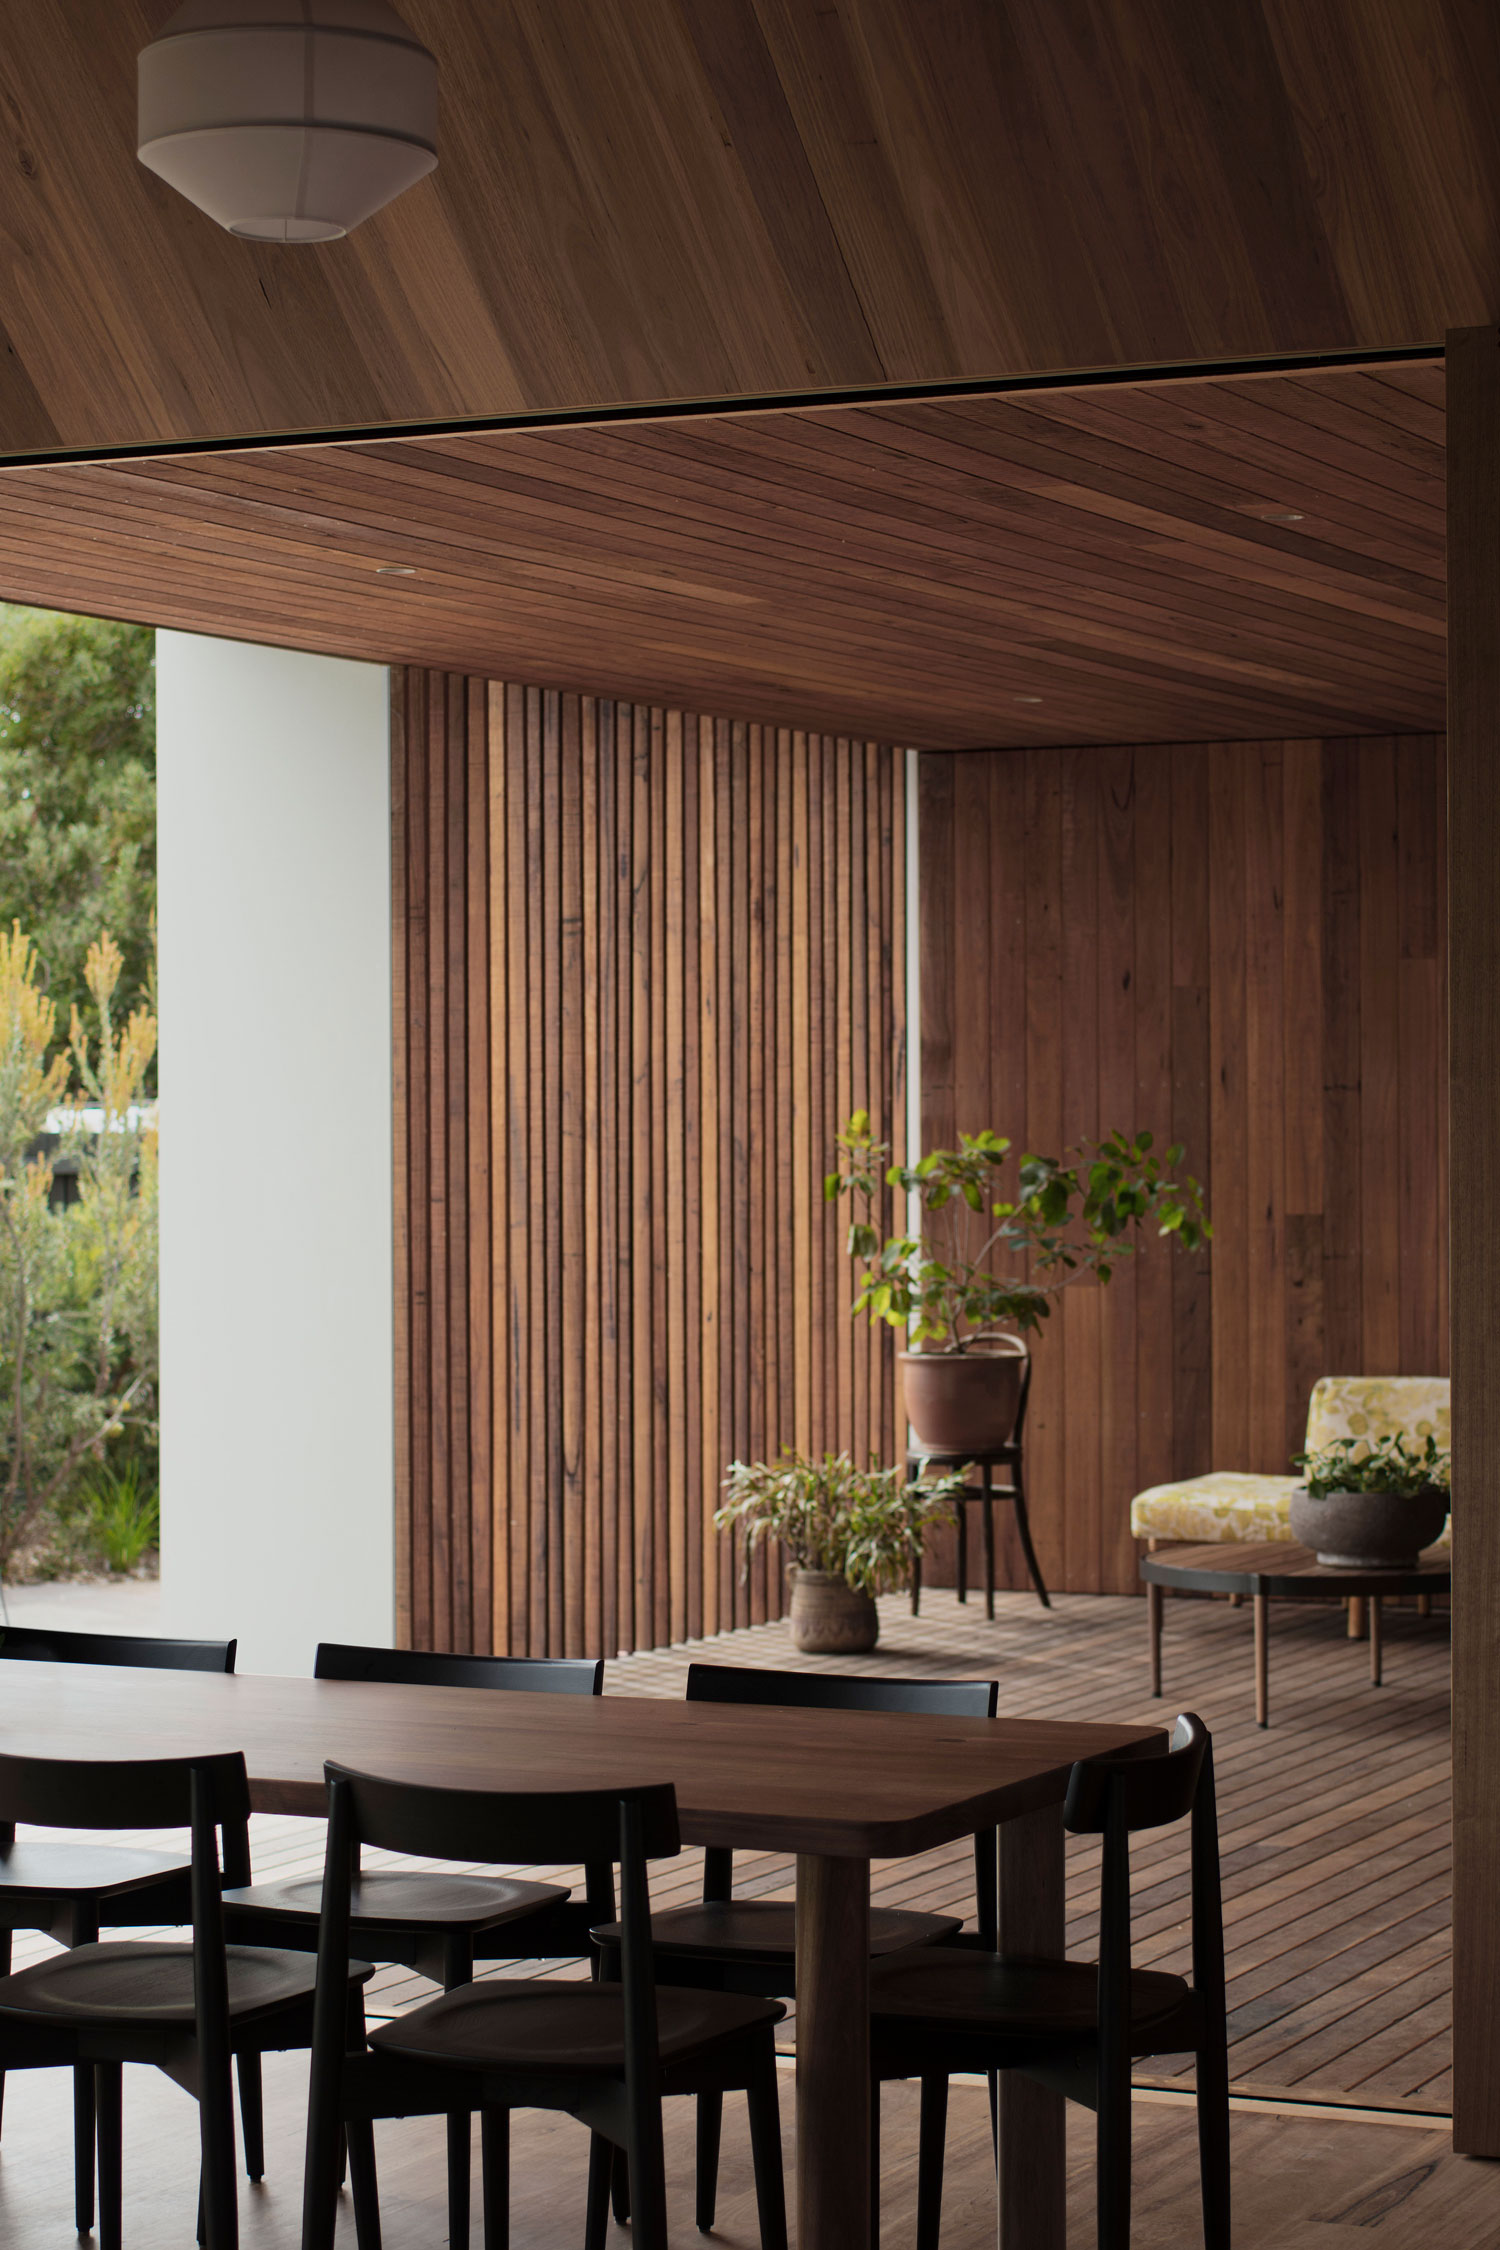 Aligned To Create A Linear Play On The Coastal Home Aesthetic And Maximise Their Proximity To The Adjacent Coast